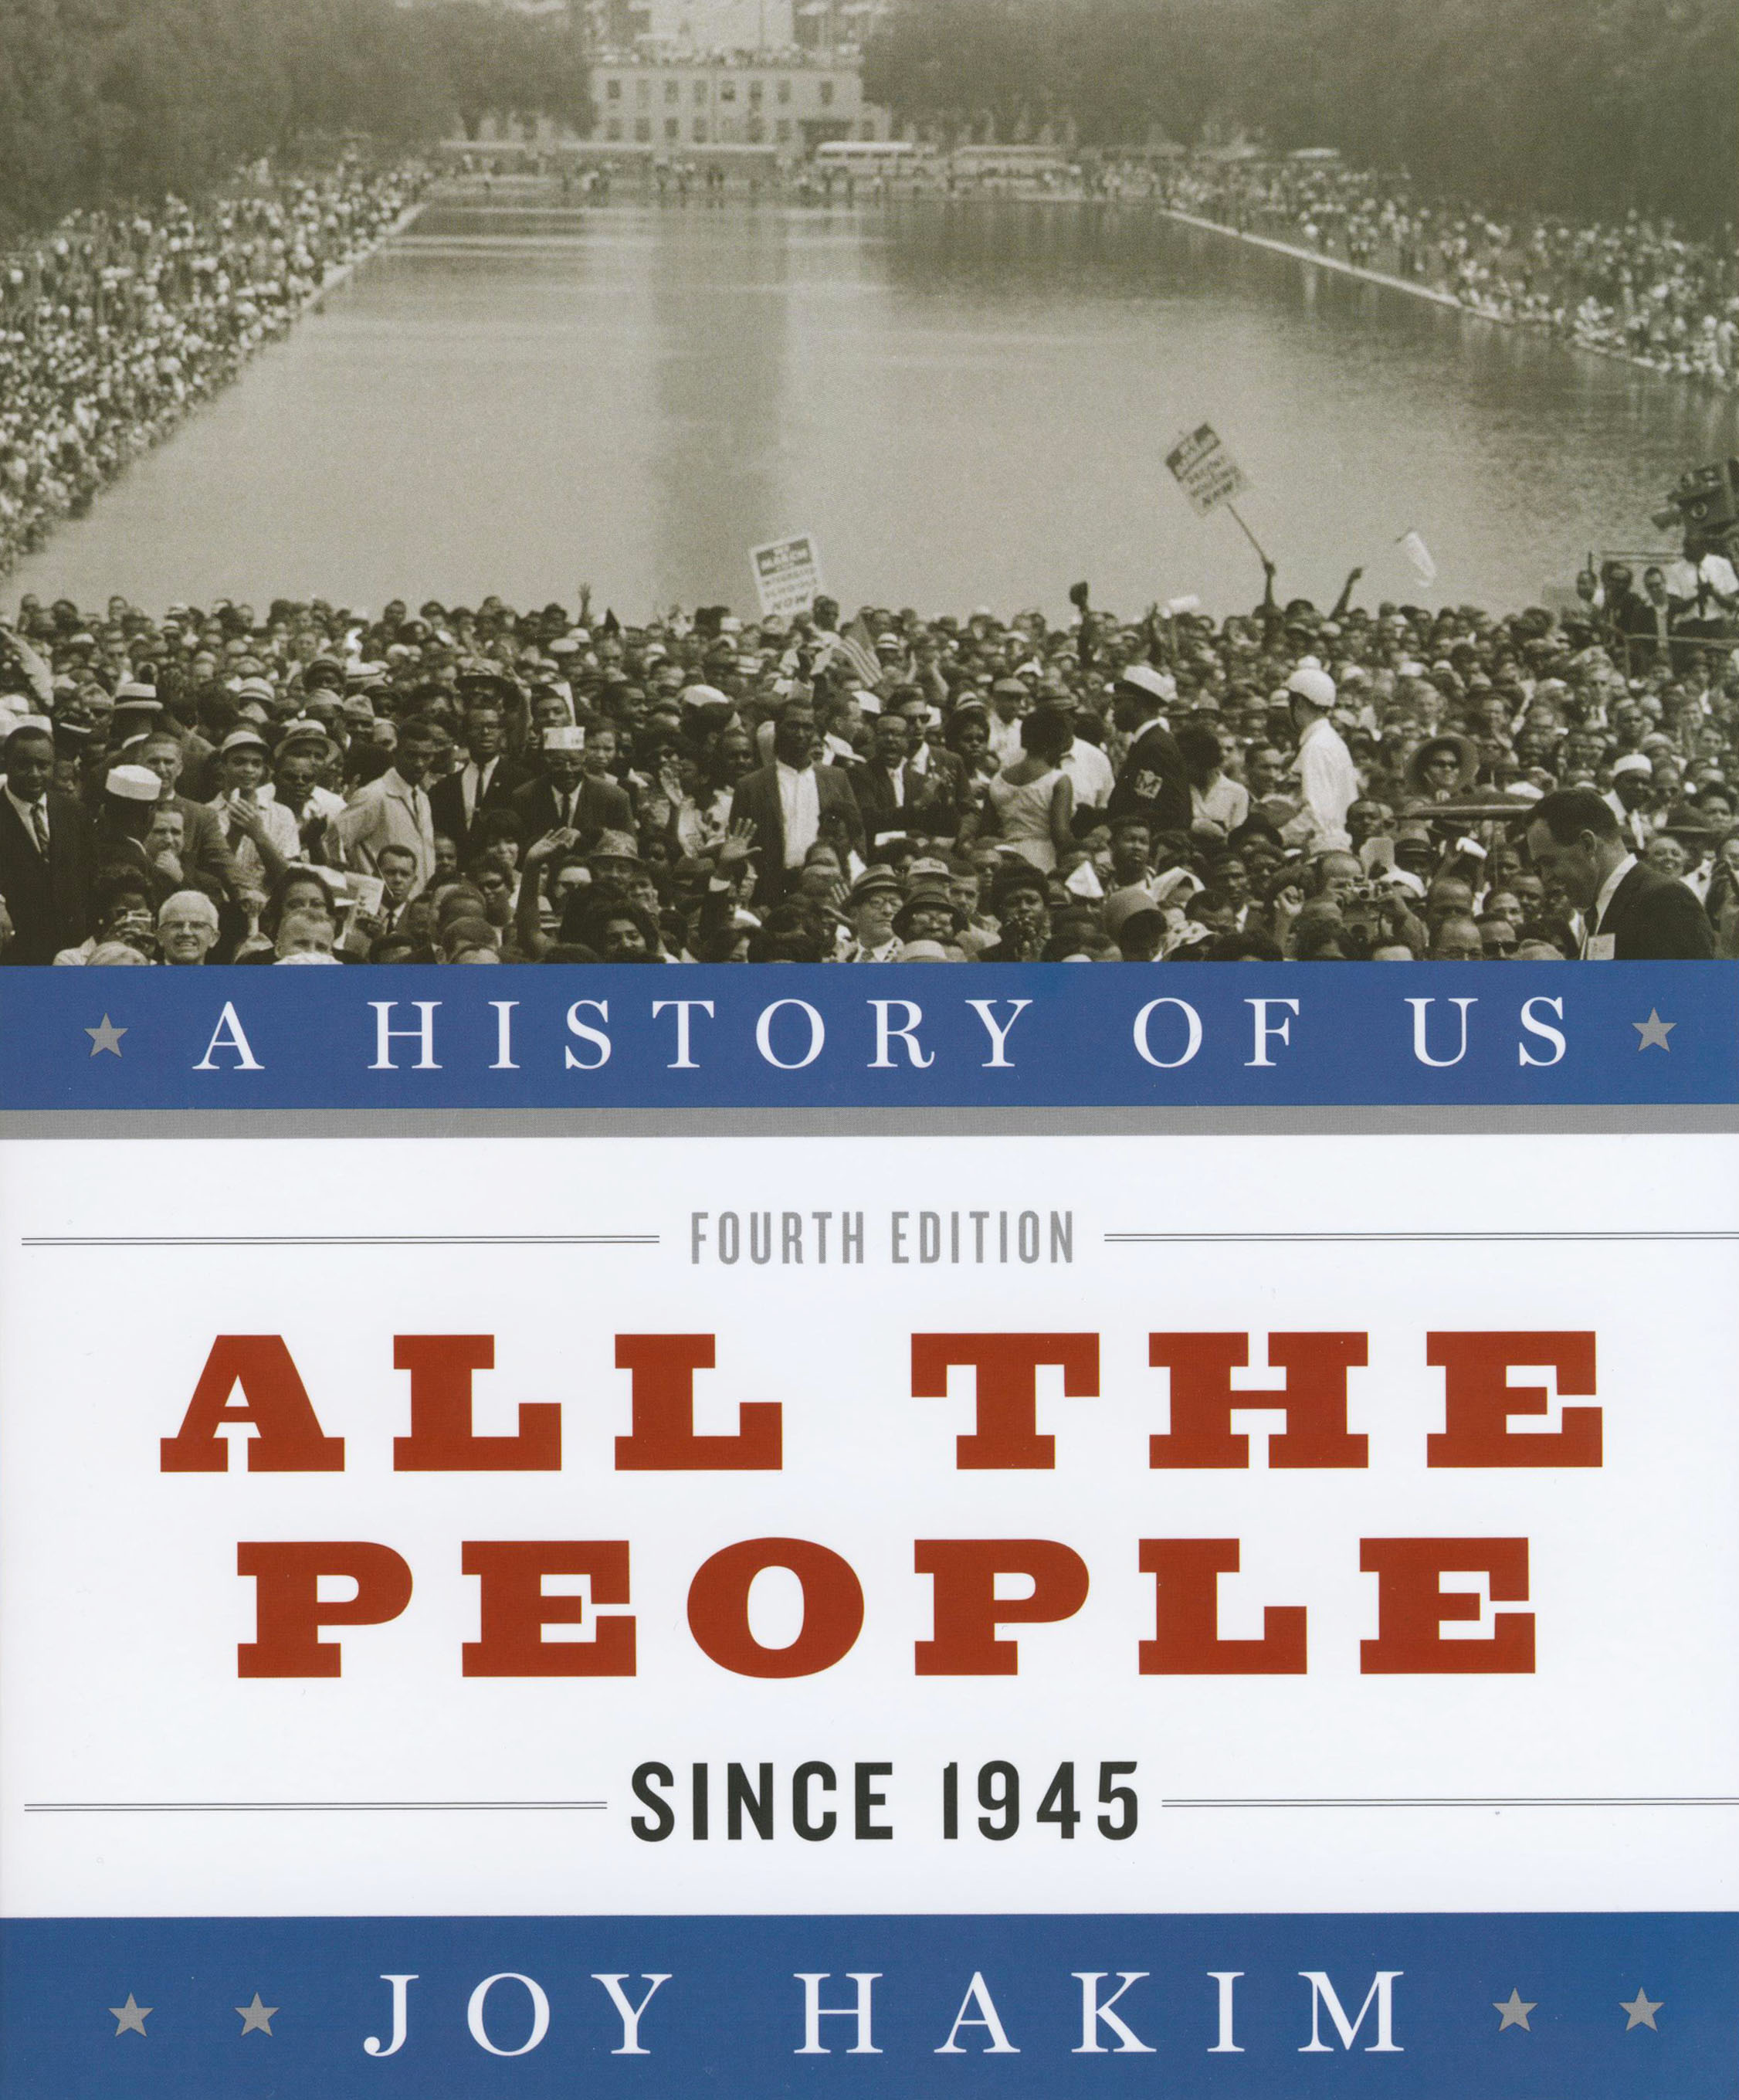 A History of US: All the People Since 1945 Book